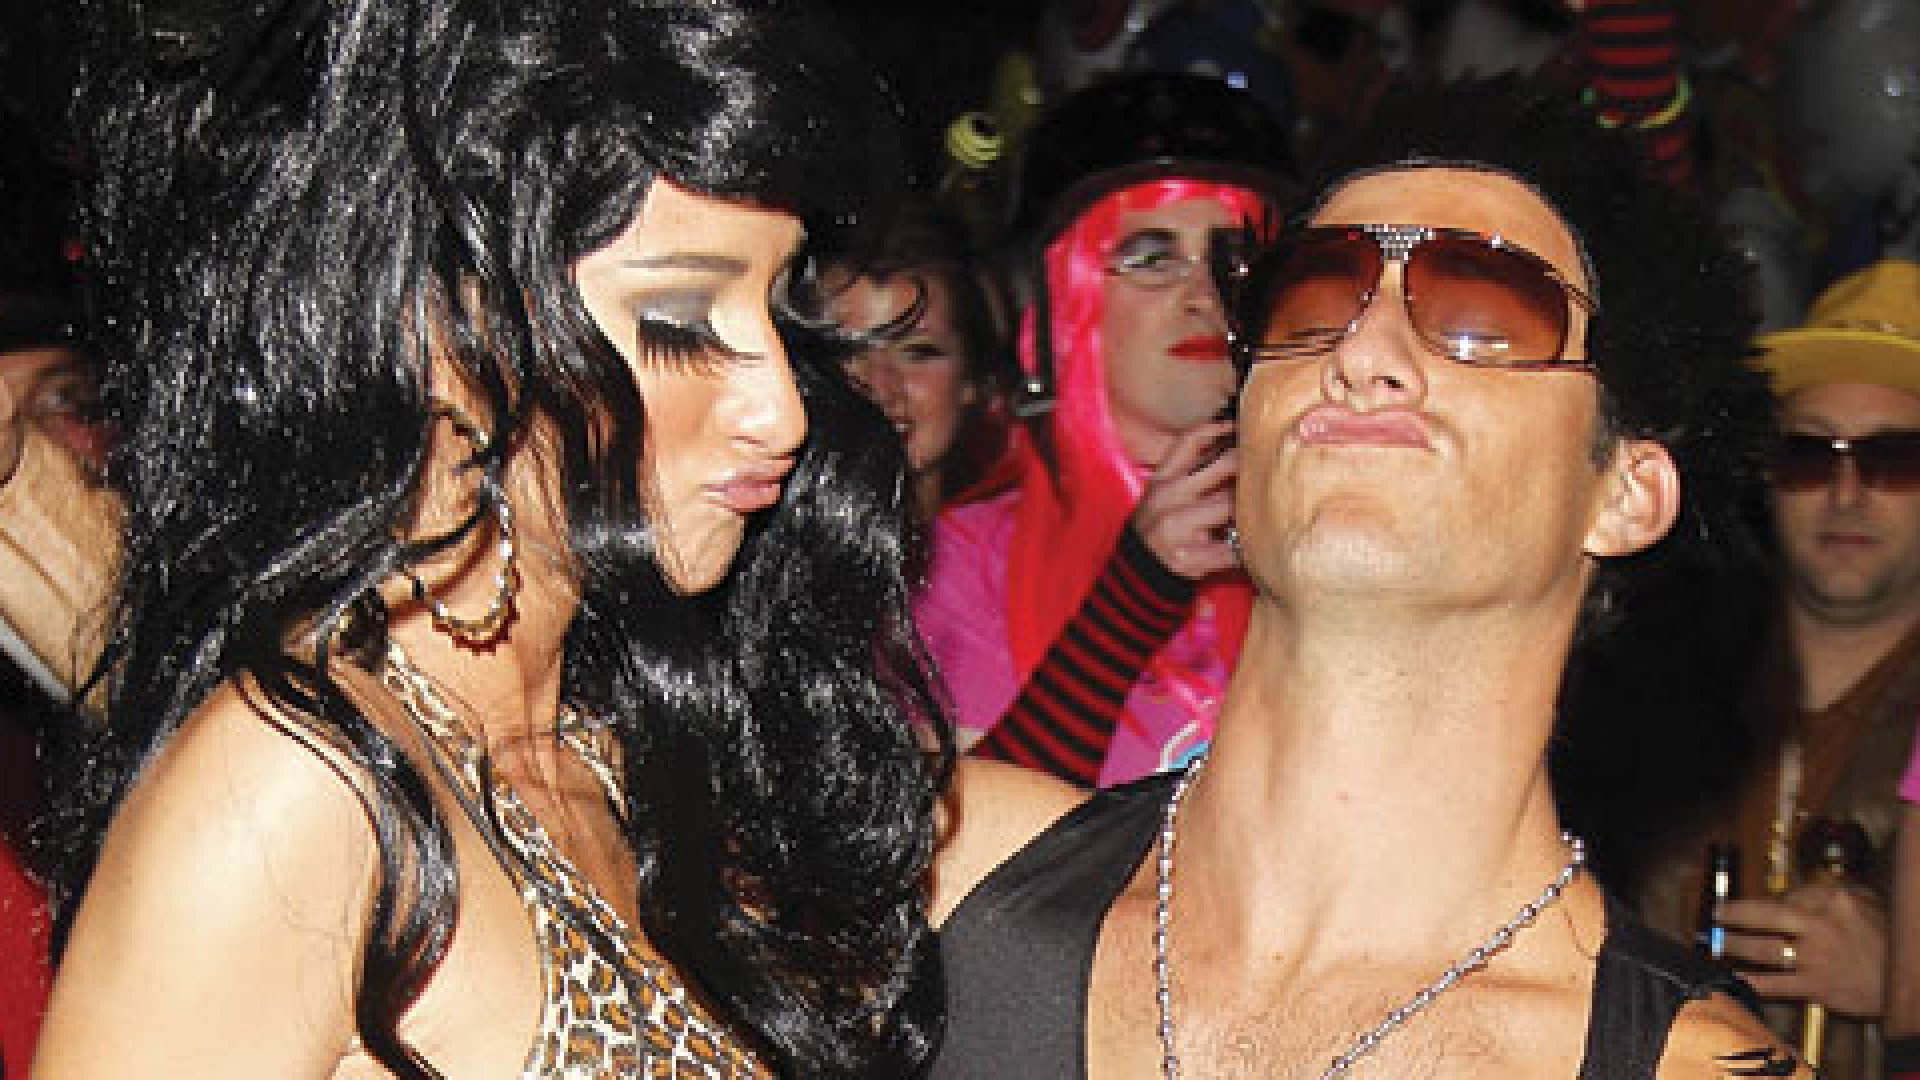 Jersey Shore and Lady Gaga Gear Drive Costume Shop Sales